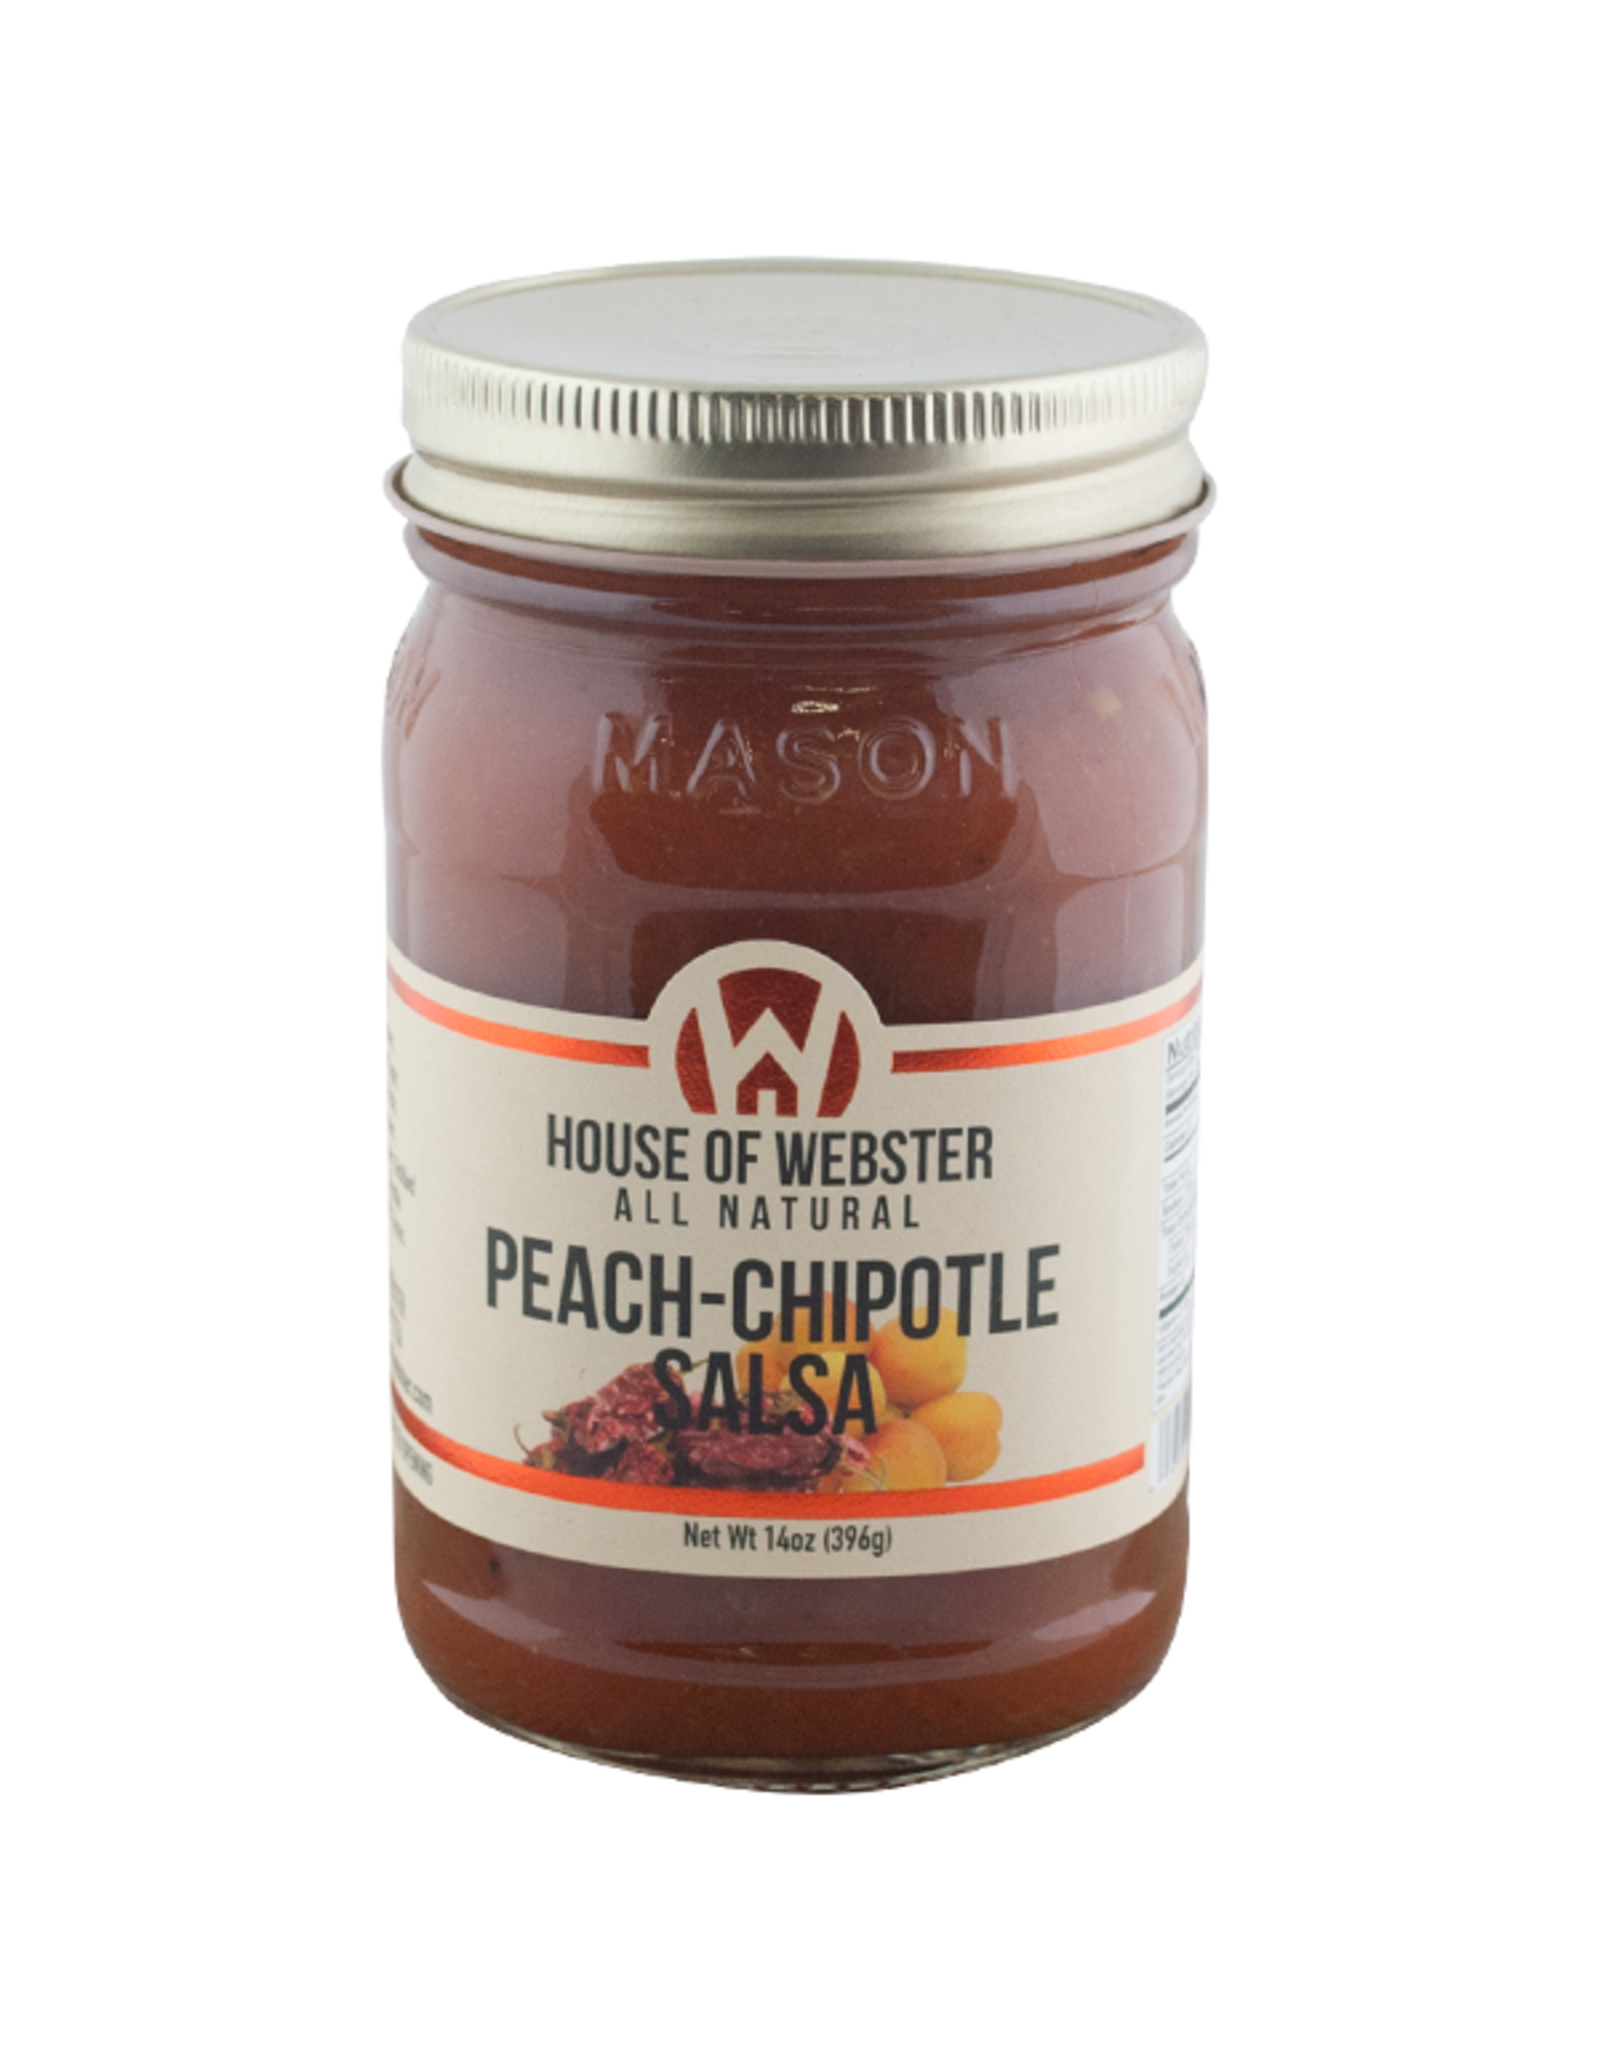 House of Webster Peach-Chipotle Salsa, 14 oz.